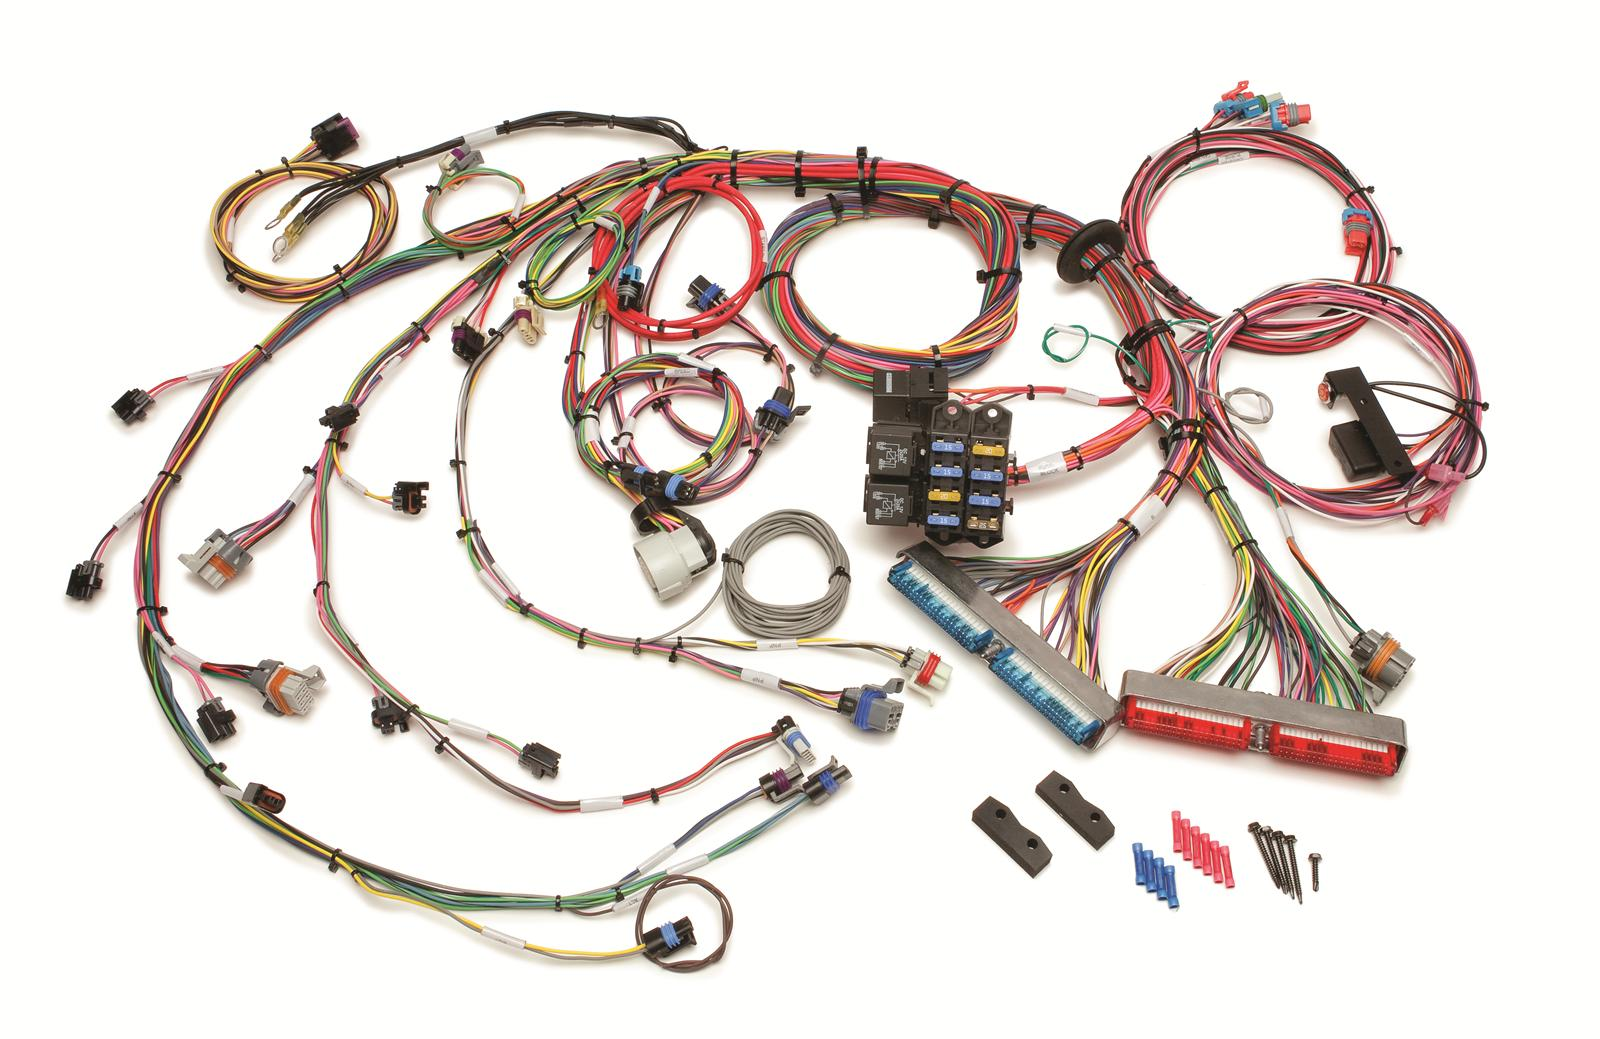 Painless Wiring Ls1 Swap Harness : Painless ls wiring harness get free image about